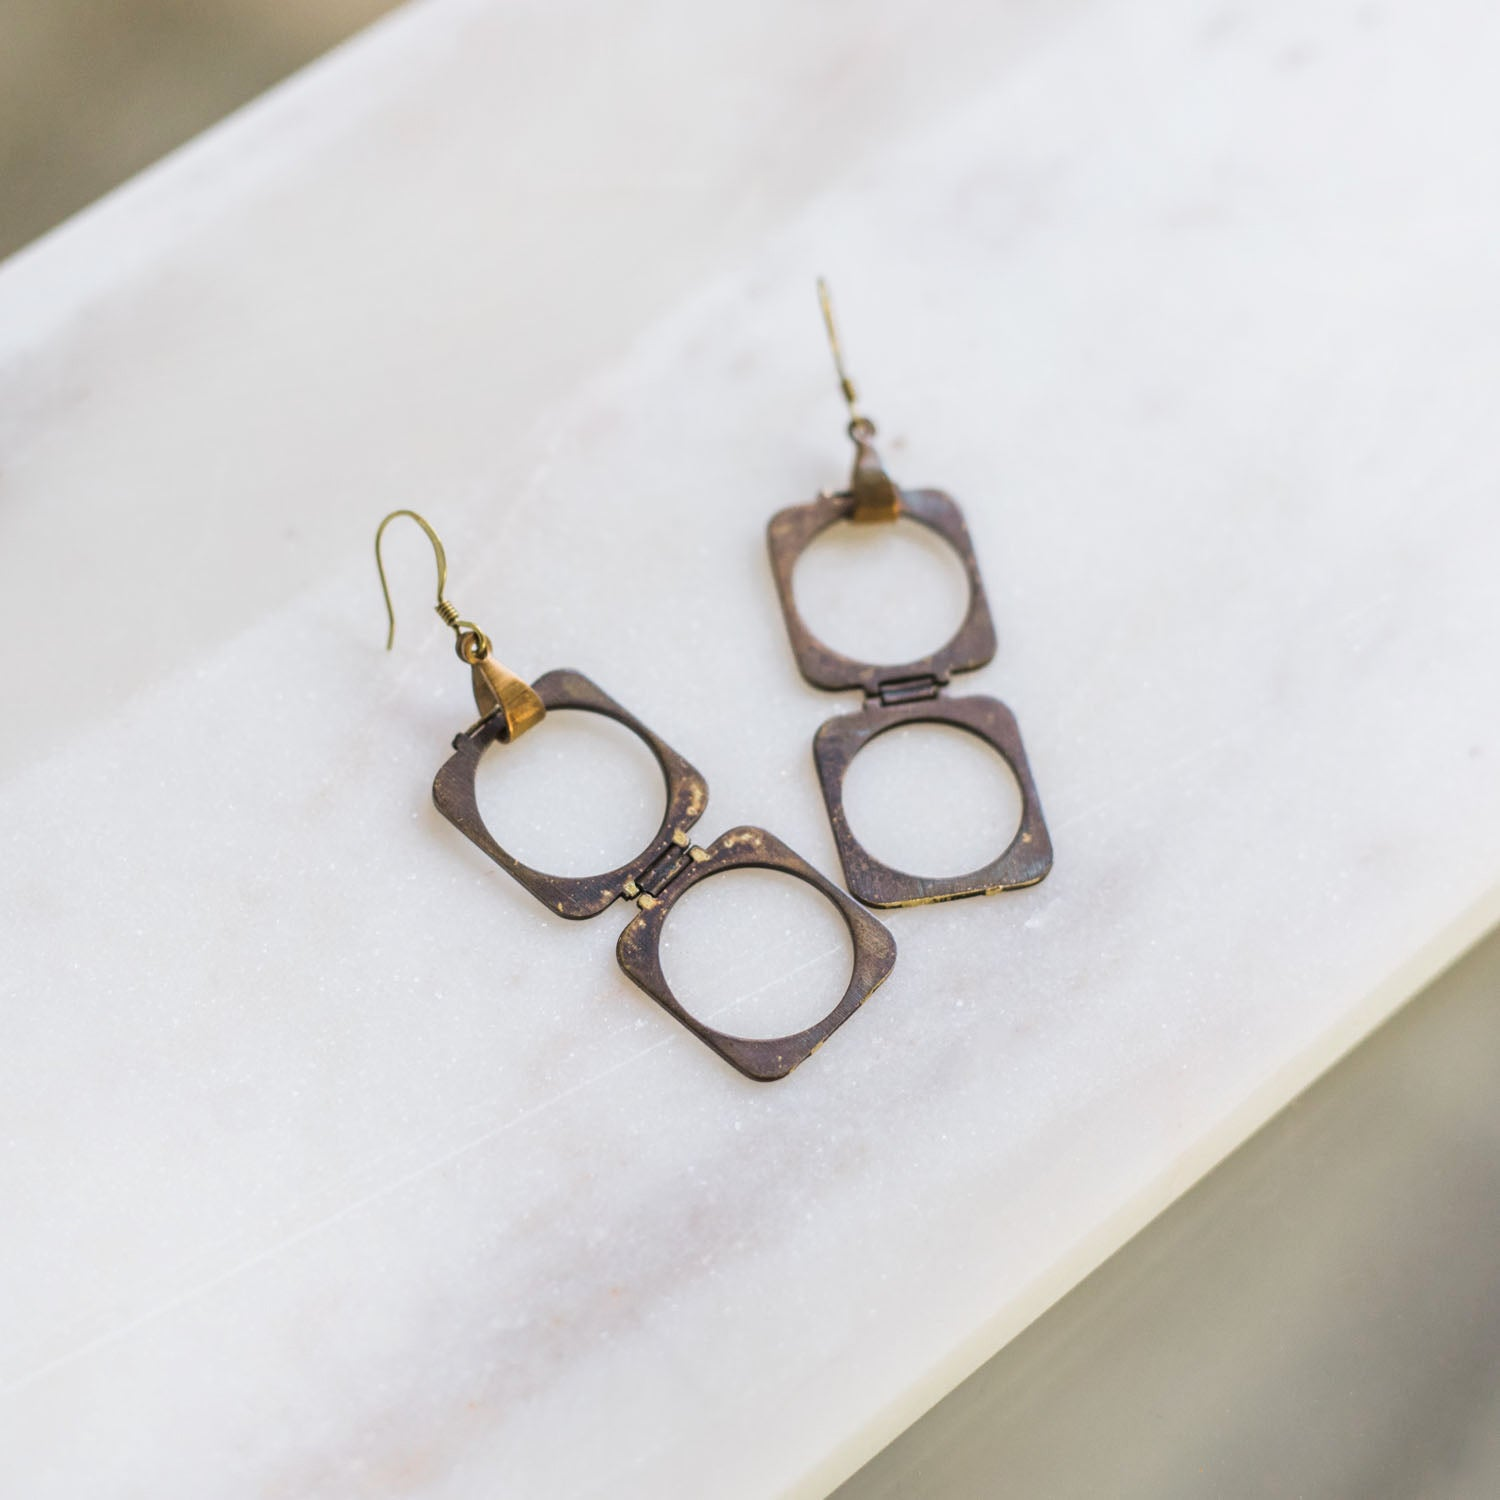 MOD Earrings - Twisted Silver Jewelry